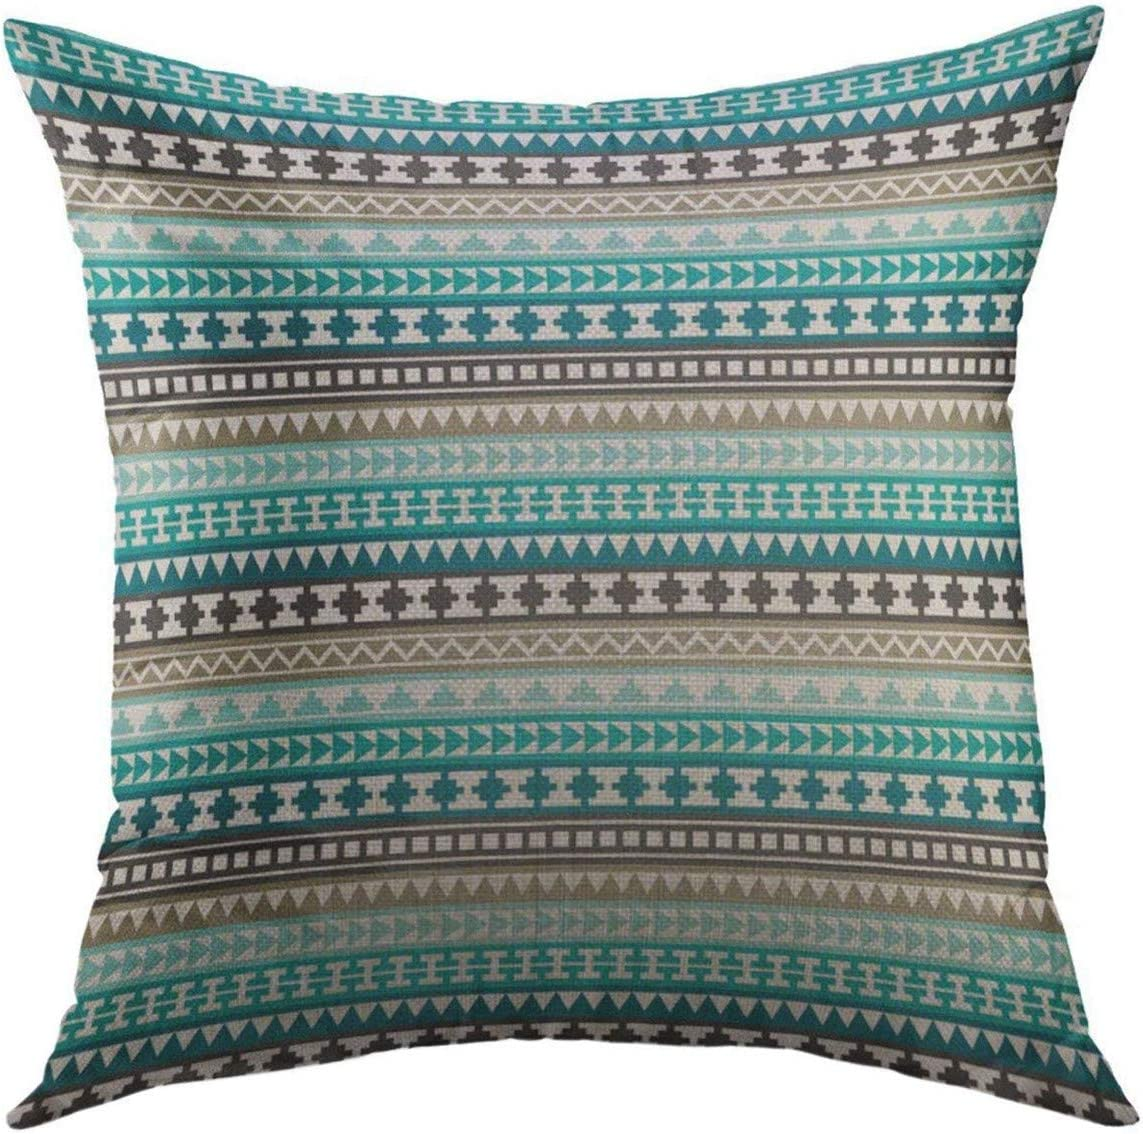 Mugod Decorative Throw Pillow Cover for Couch Sofa,Blue Turquoise Teal Gray Tribal Aztec White Hipster Home Decor Pillow case 18x18 Inch